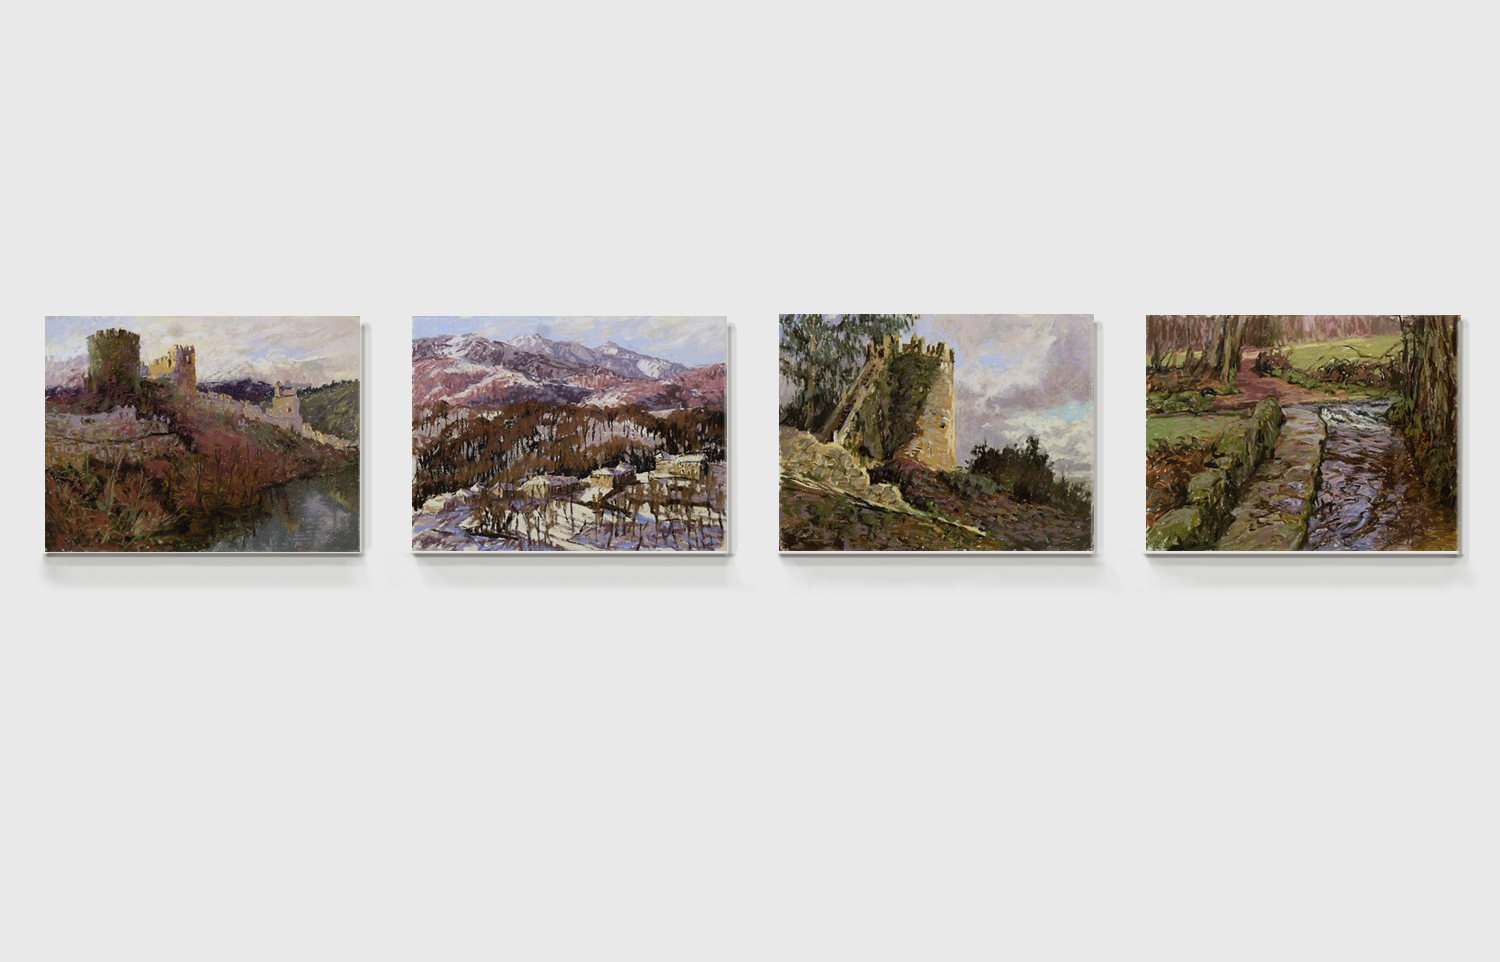 selection of paintings by sharon bamber from 1000 Miles Walking & Painting the Way of St James